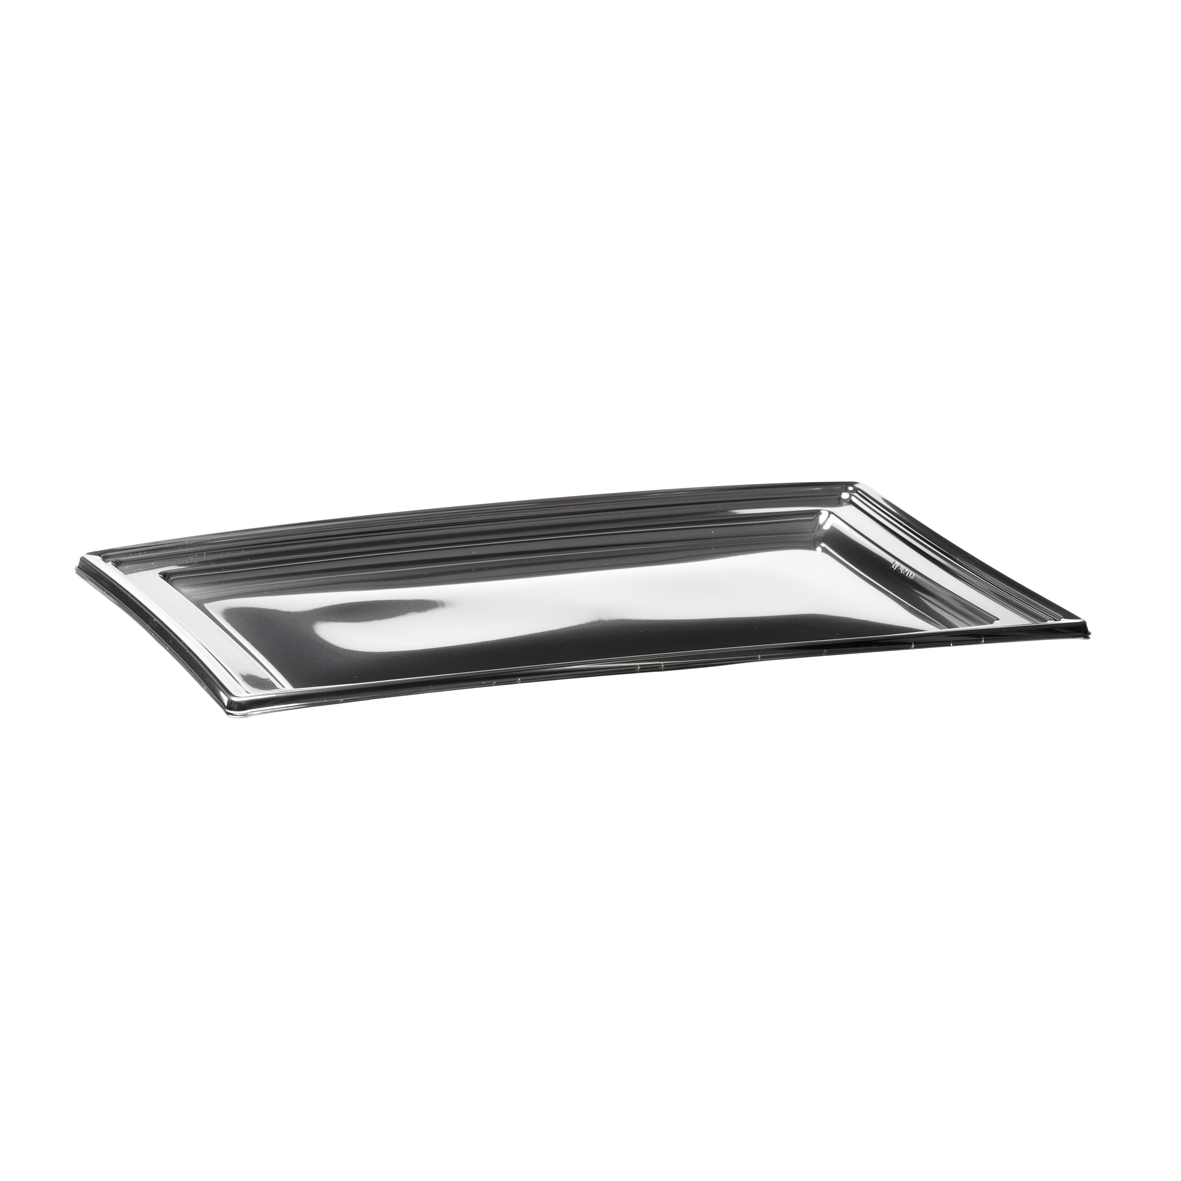 Plat traiteur APET argent - Rectangle - 46 x 30.5 cm - PLC450AR